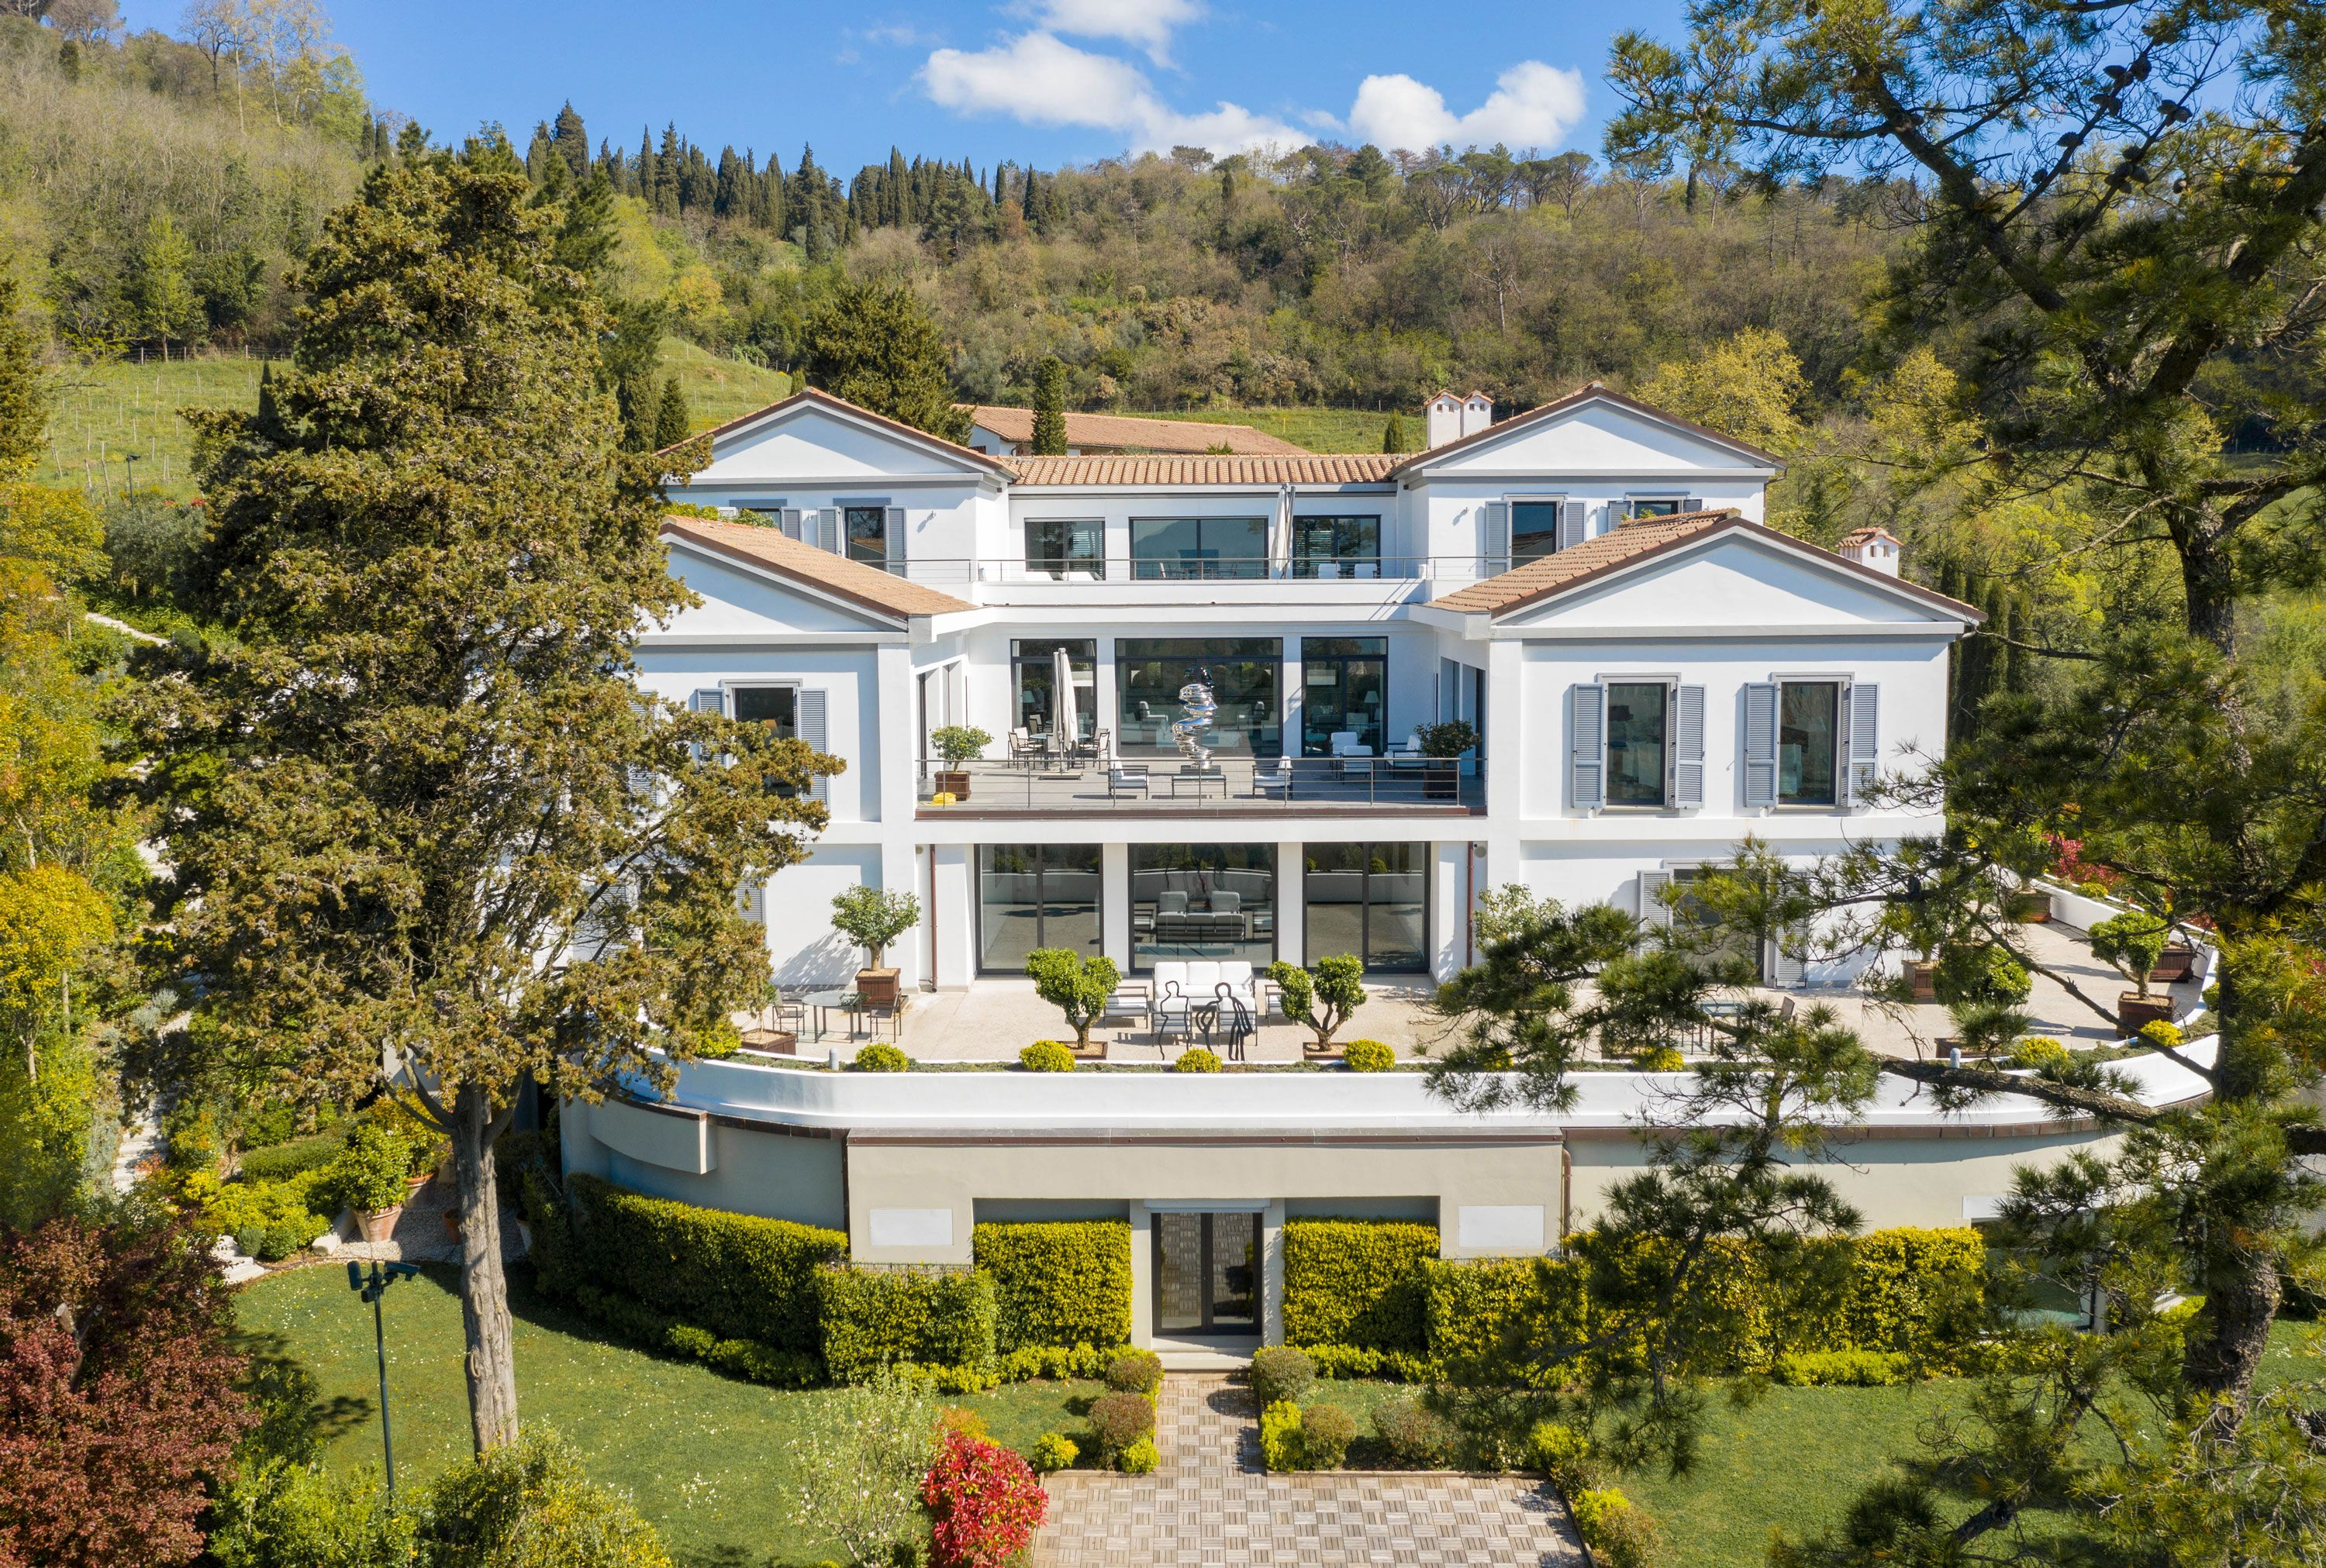 Take in the sweeping vistas of Tuscany from this glamorous estate